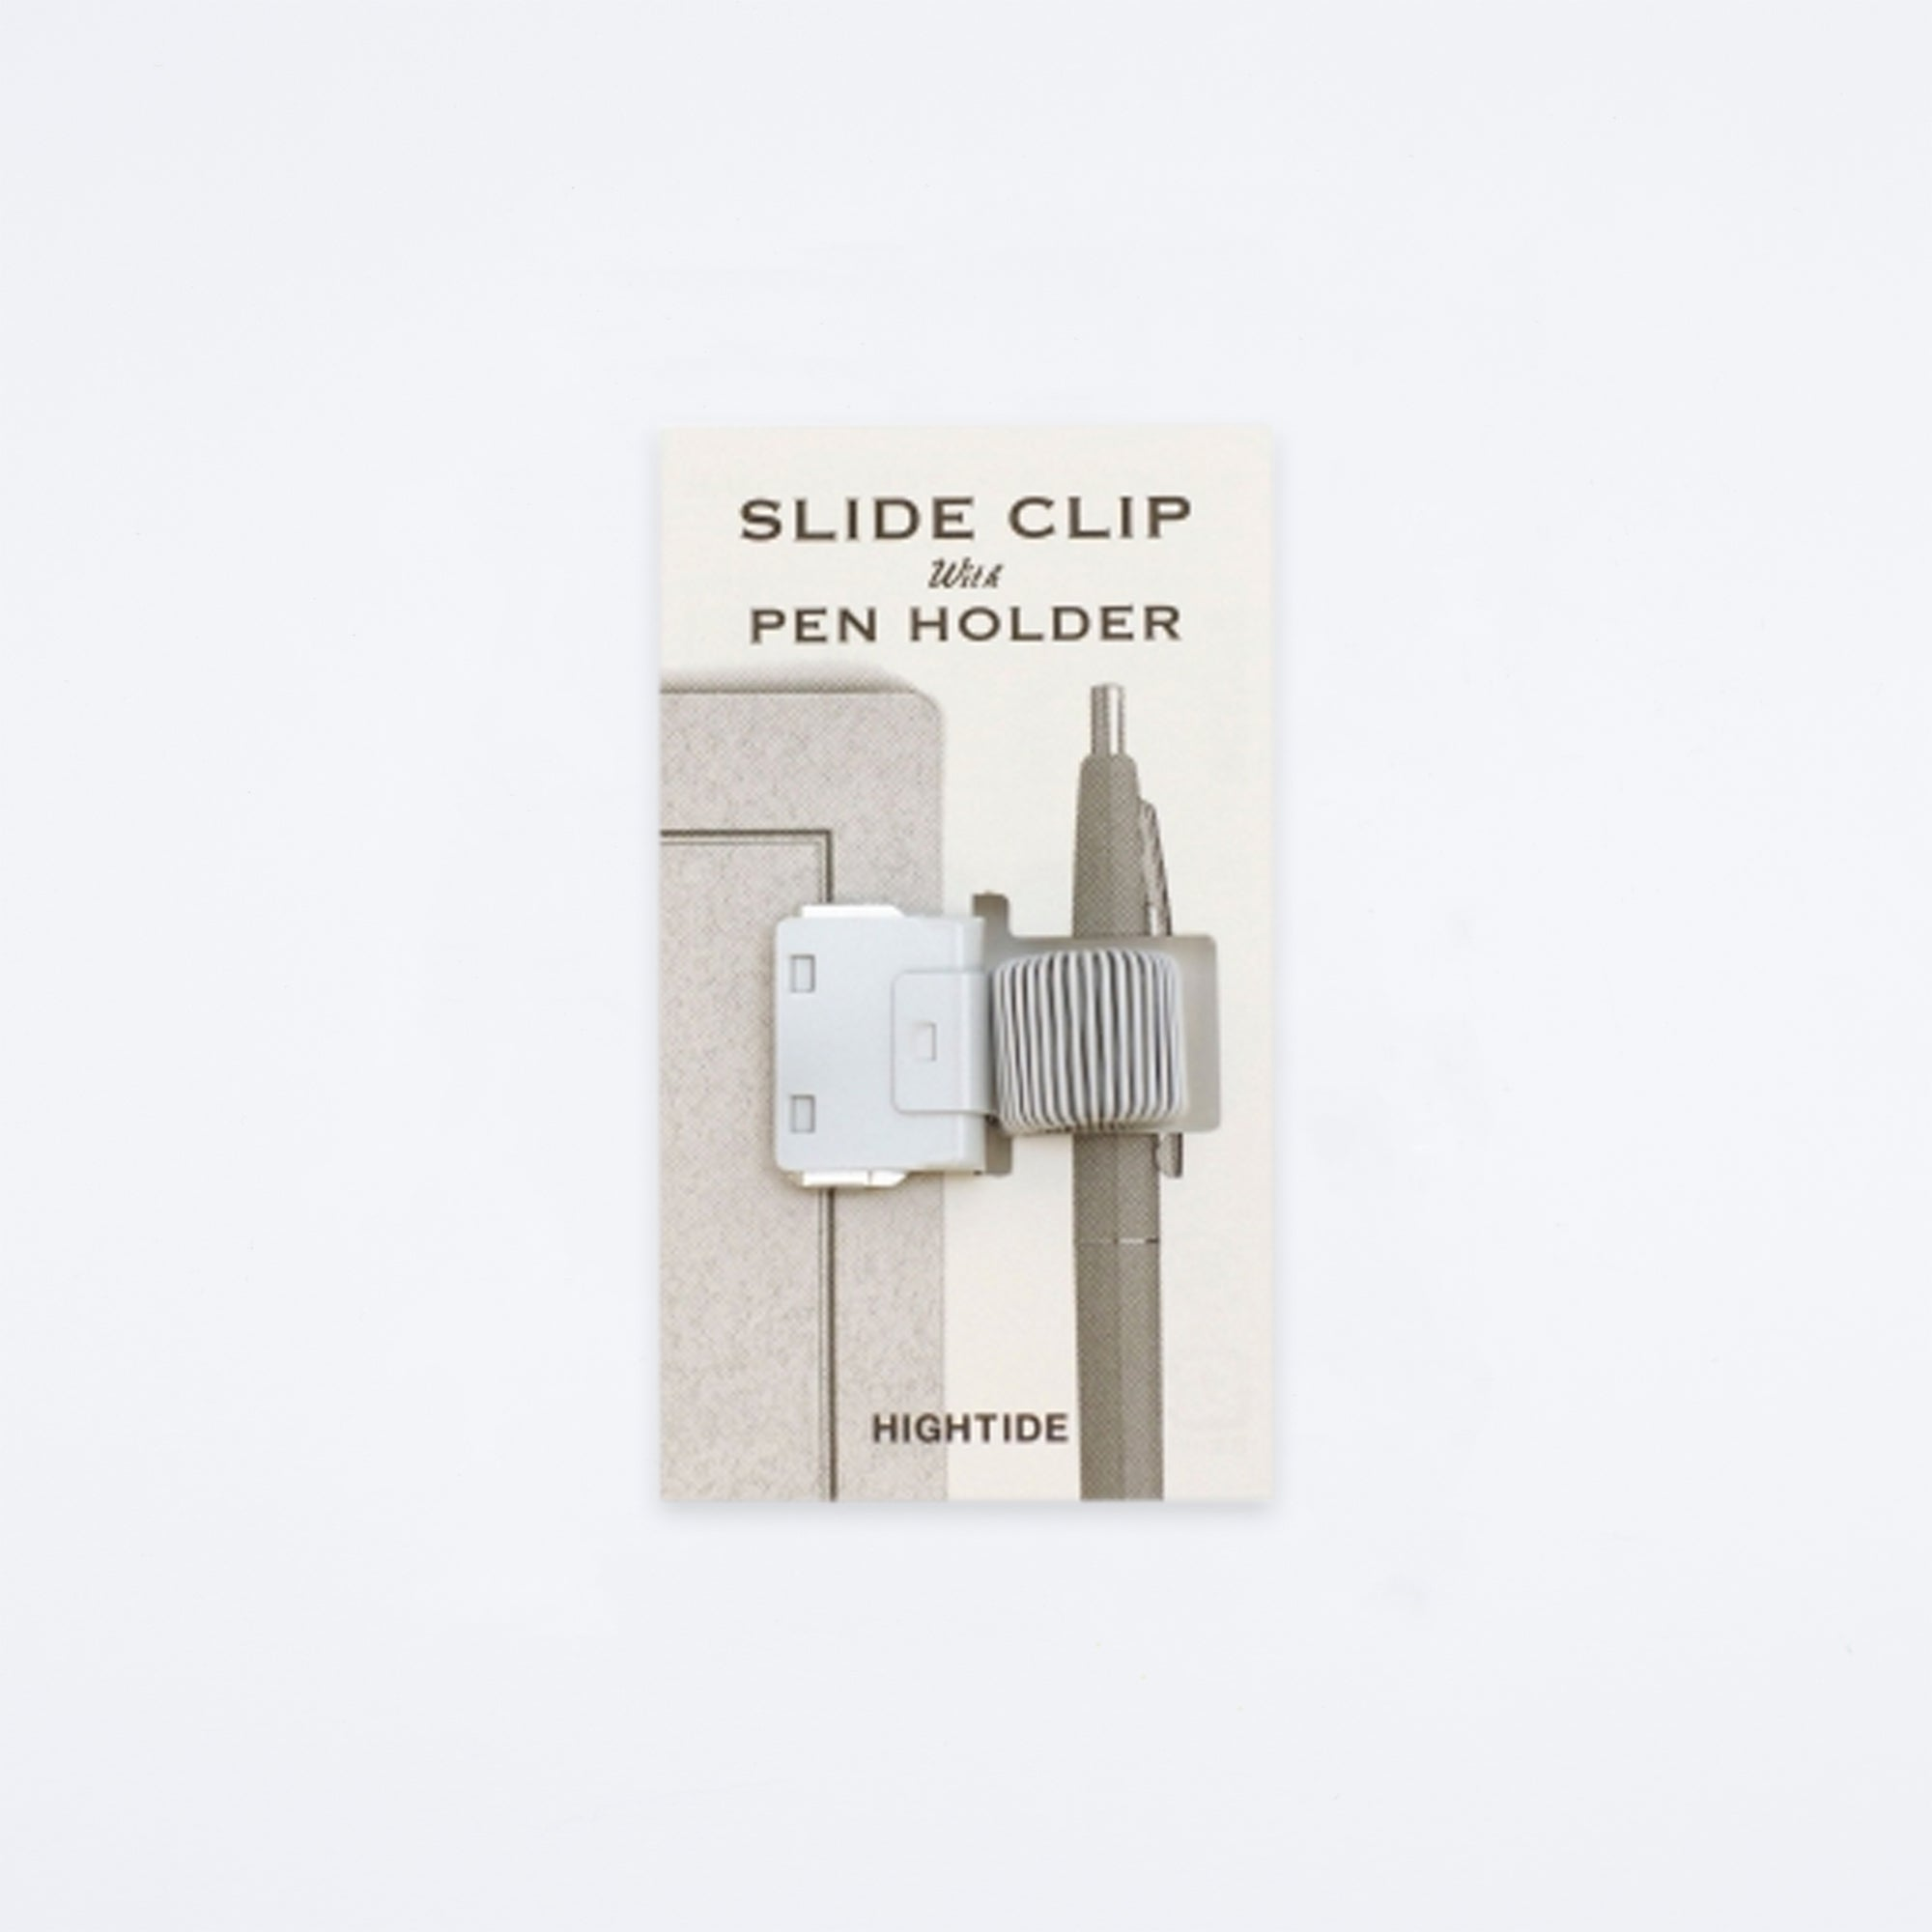 Slide Clip Pen Holder